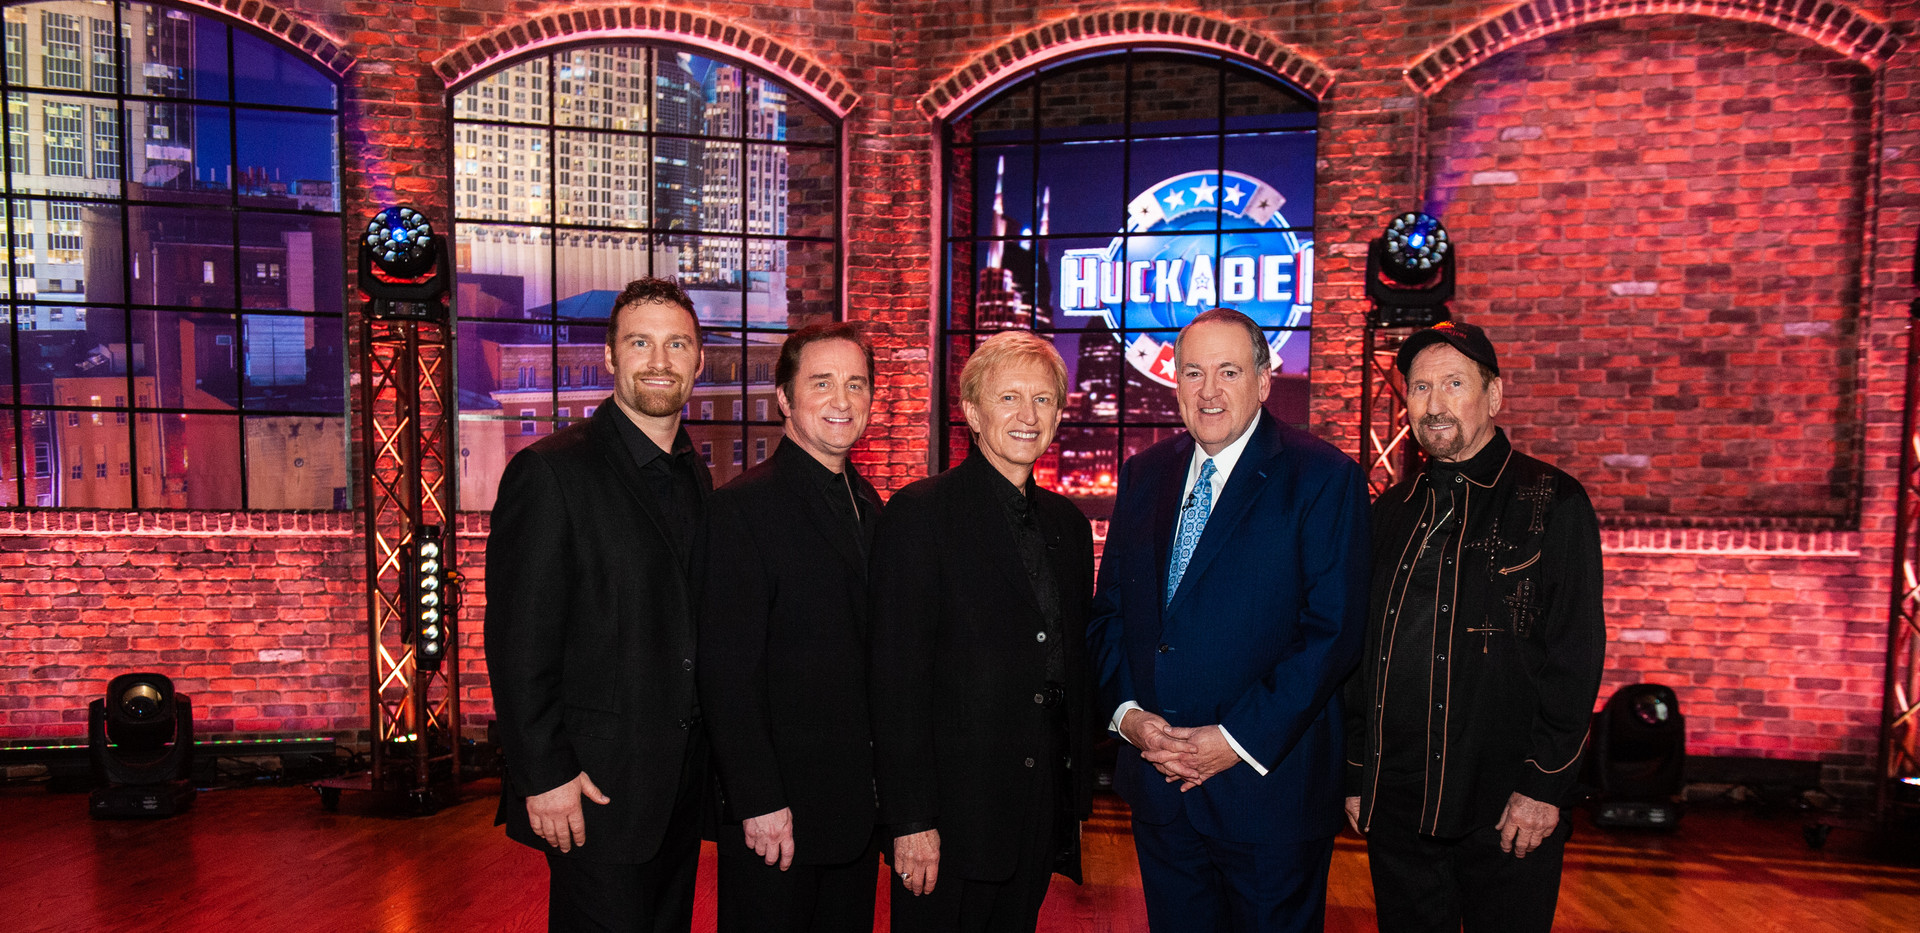 The Imperials, Gov. Mike Huckabee & Jame